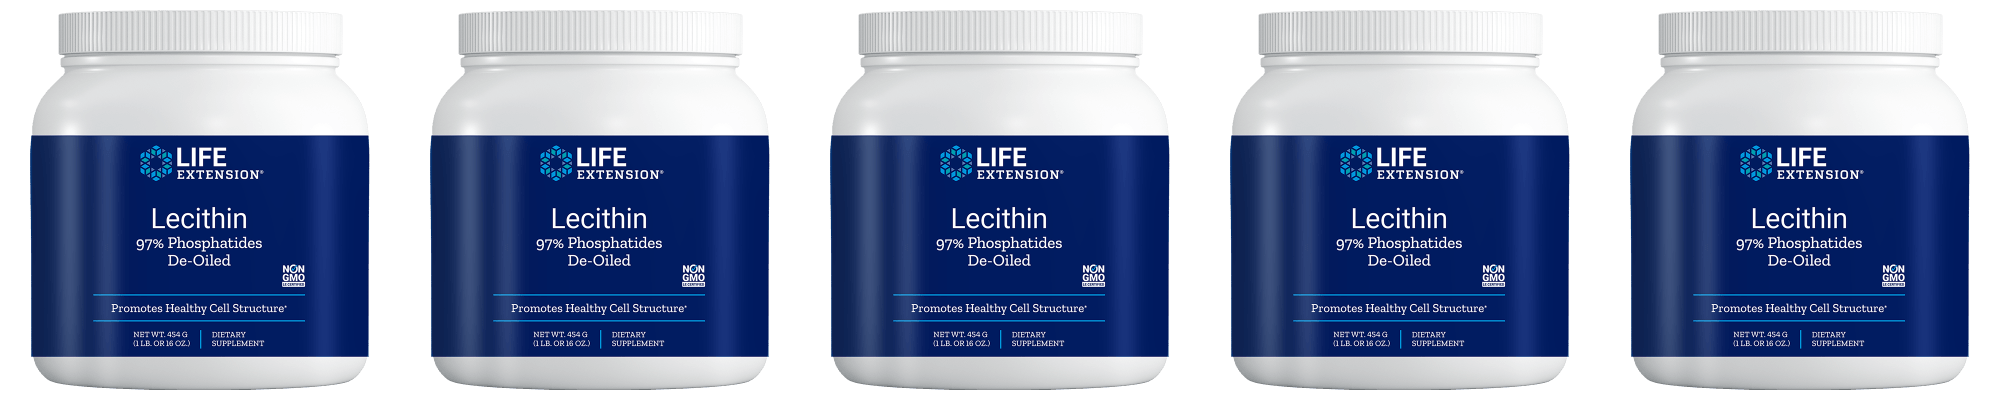 Life Extension Lecithin (97% Phosphatides De-oiled), 454 Grams, 5-pack